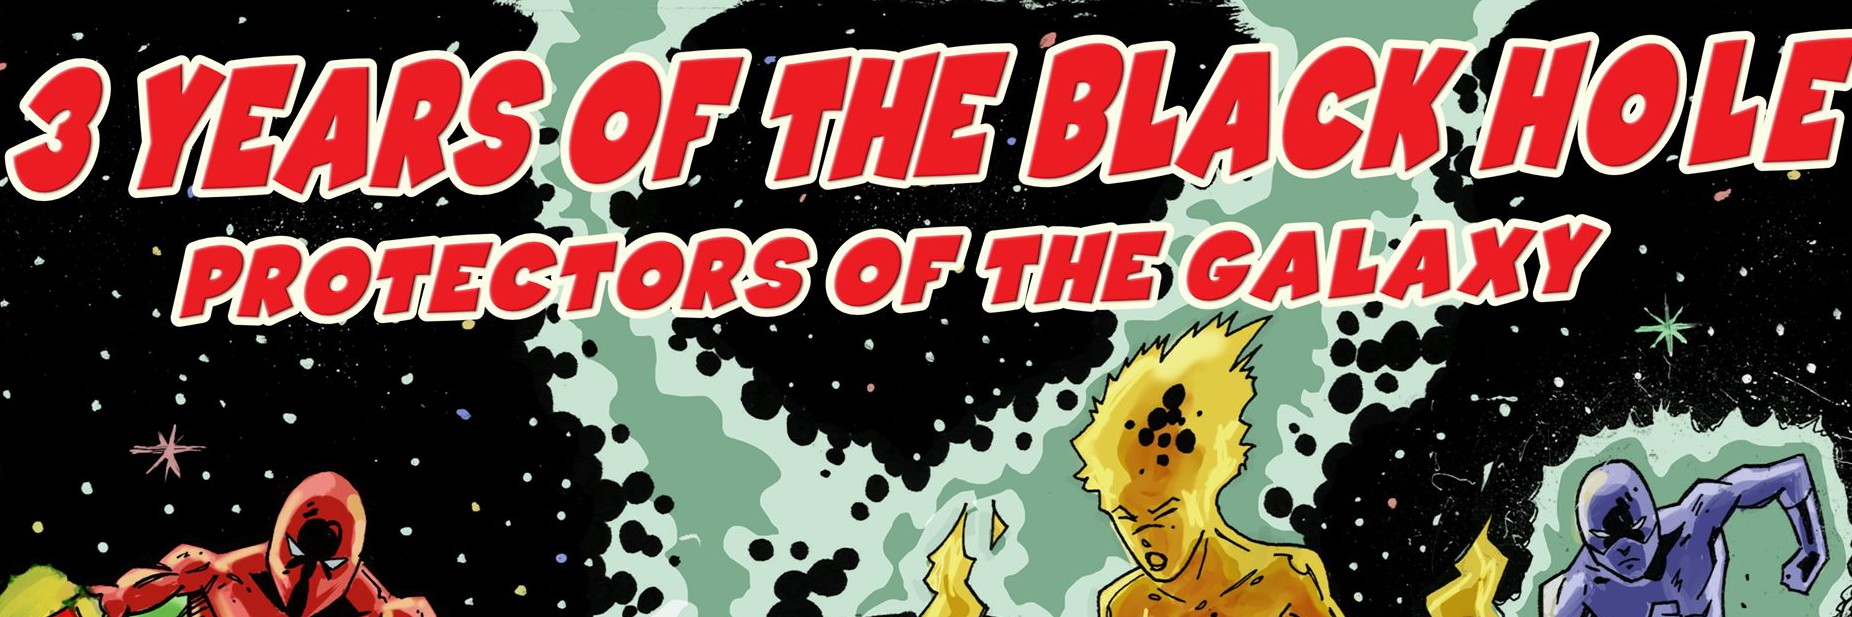 The Black Hole releases three year compilation